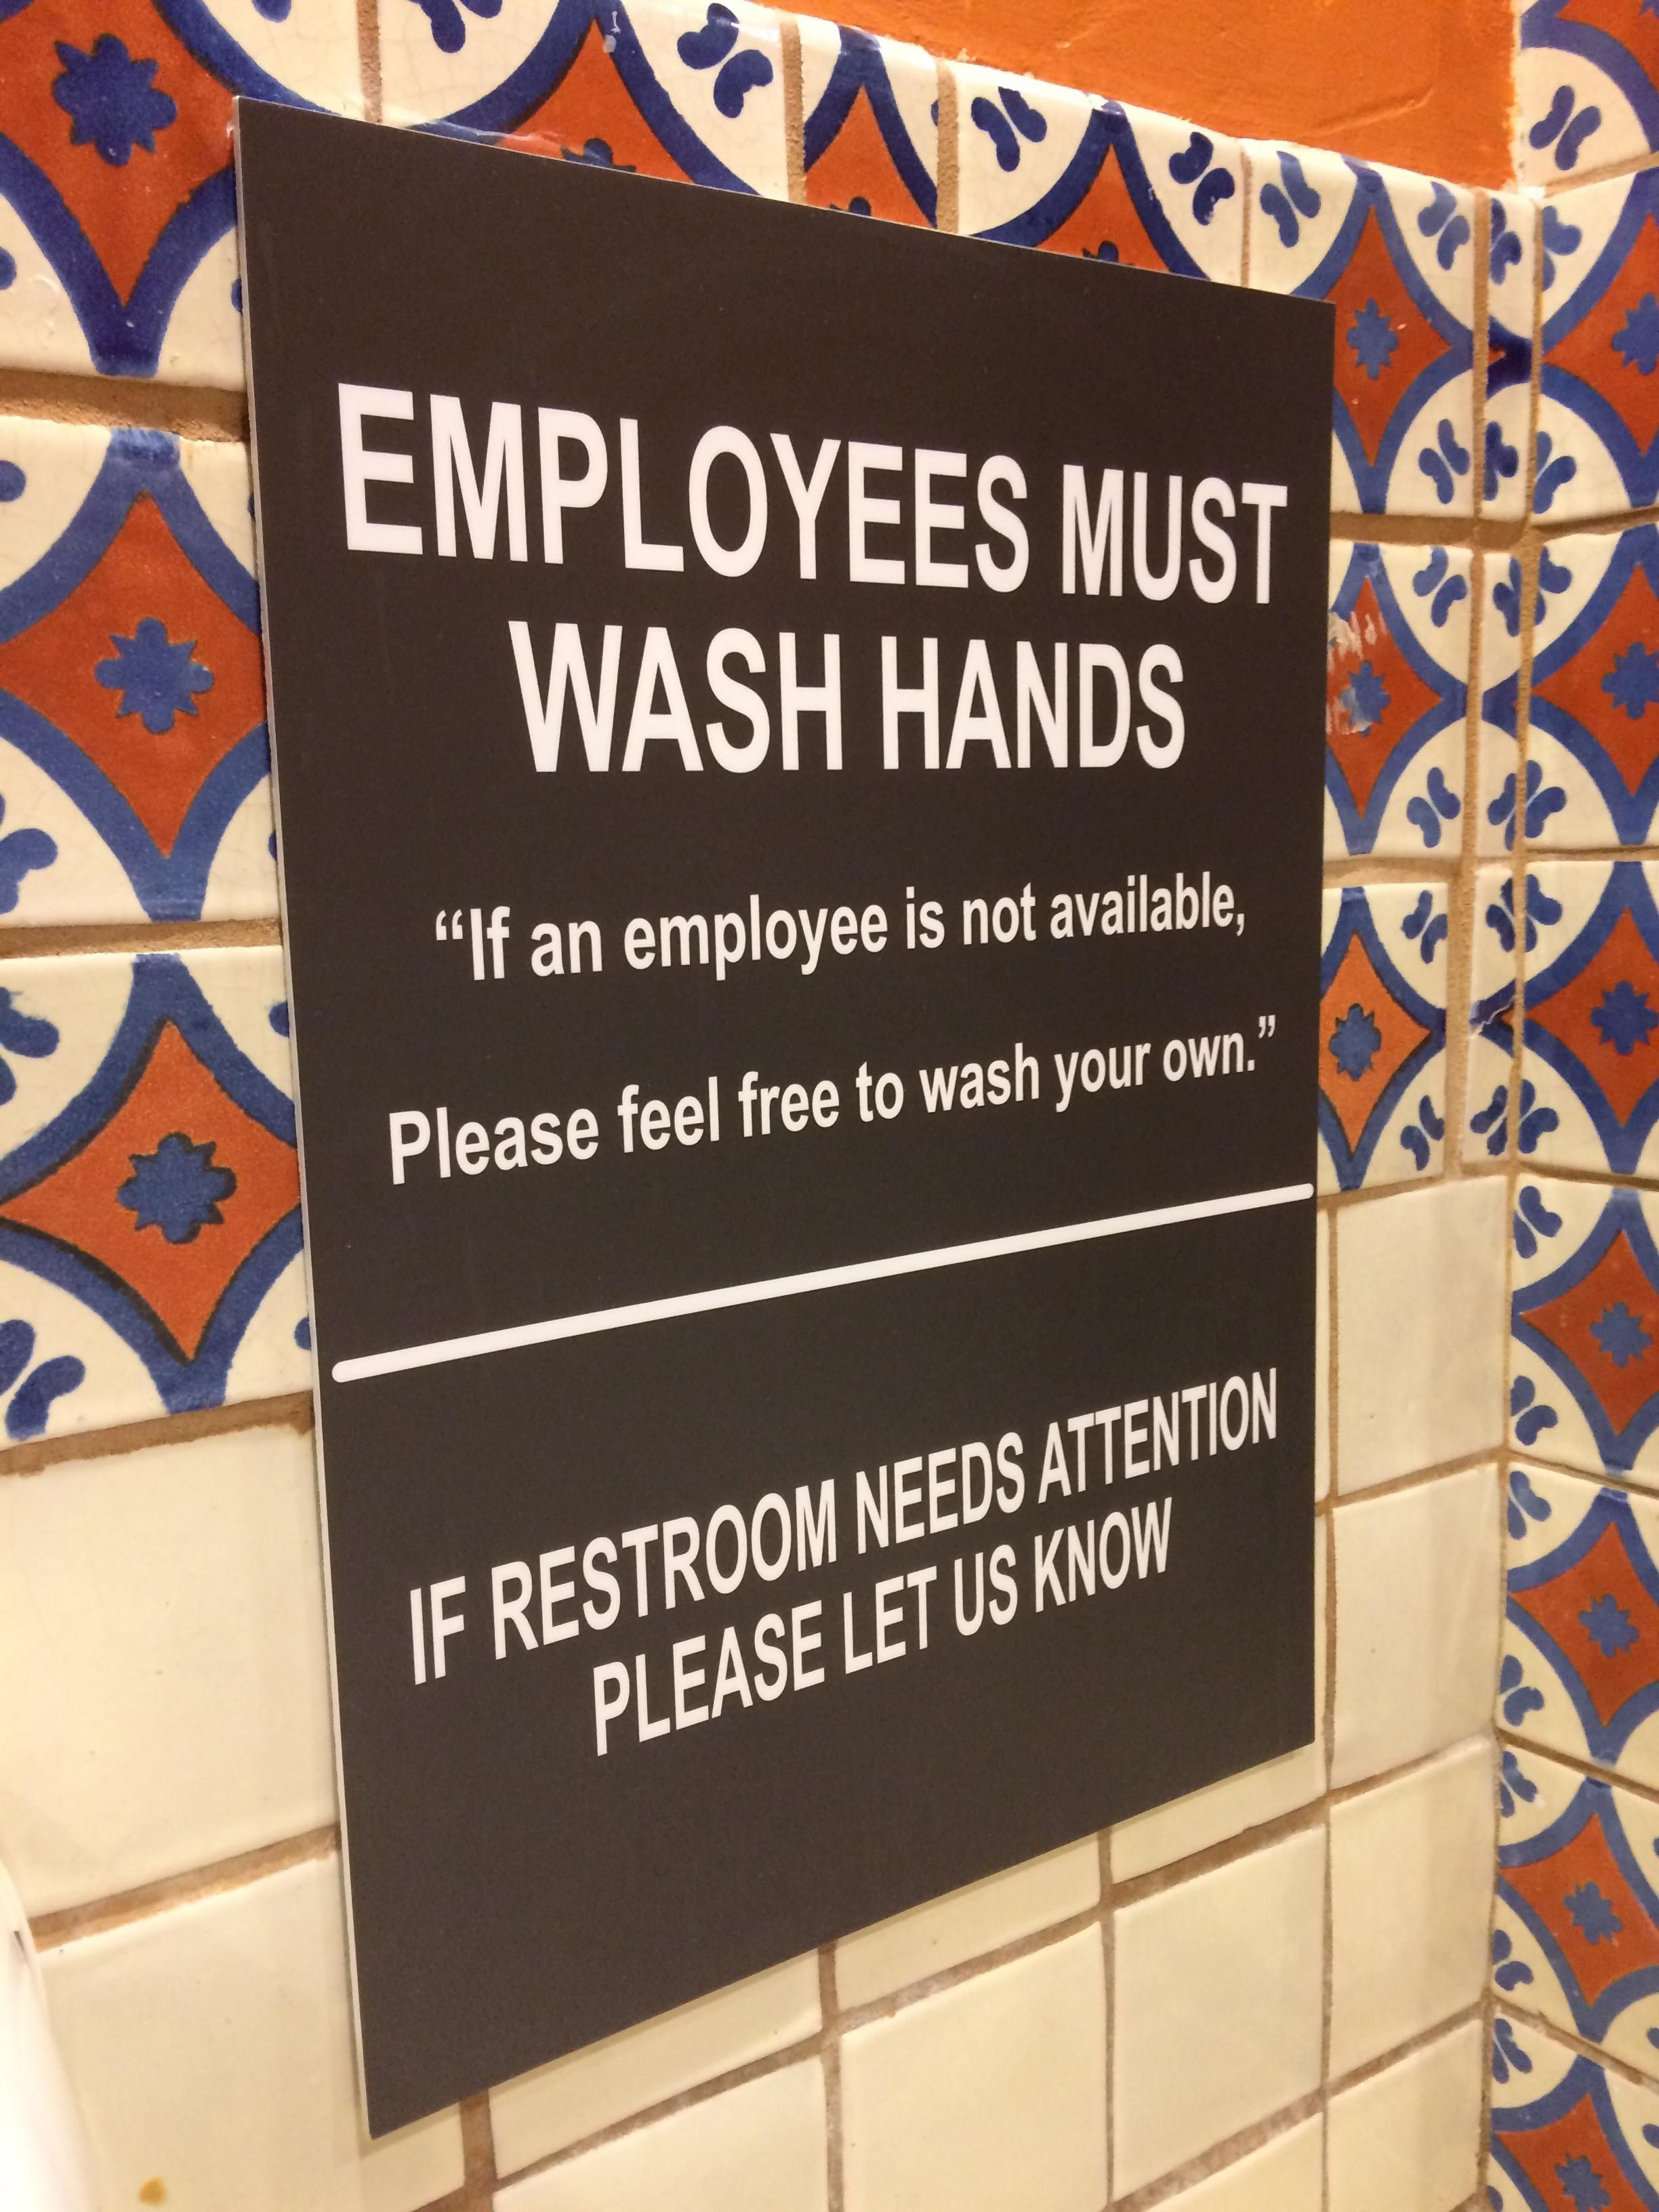 This sign was in a Chili's restroom